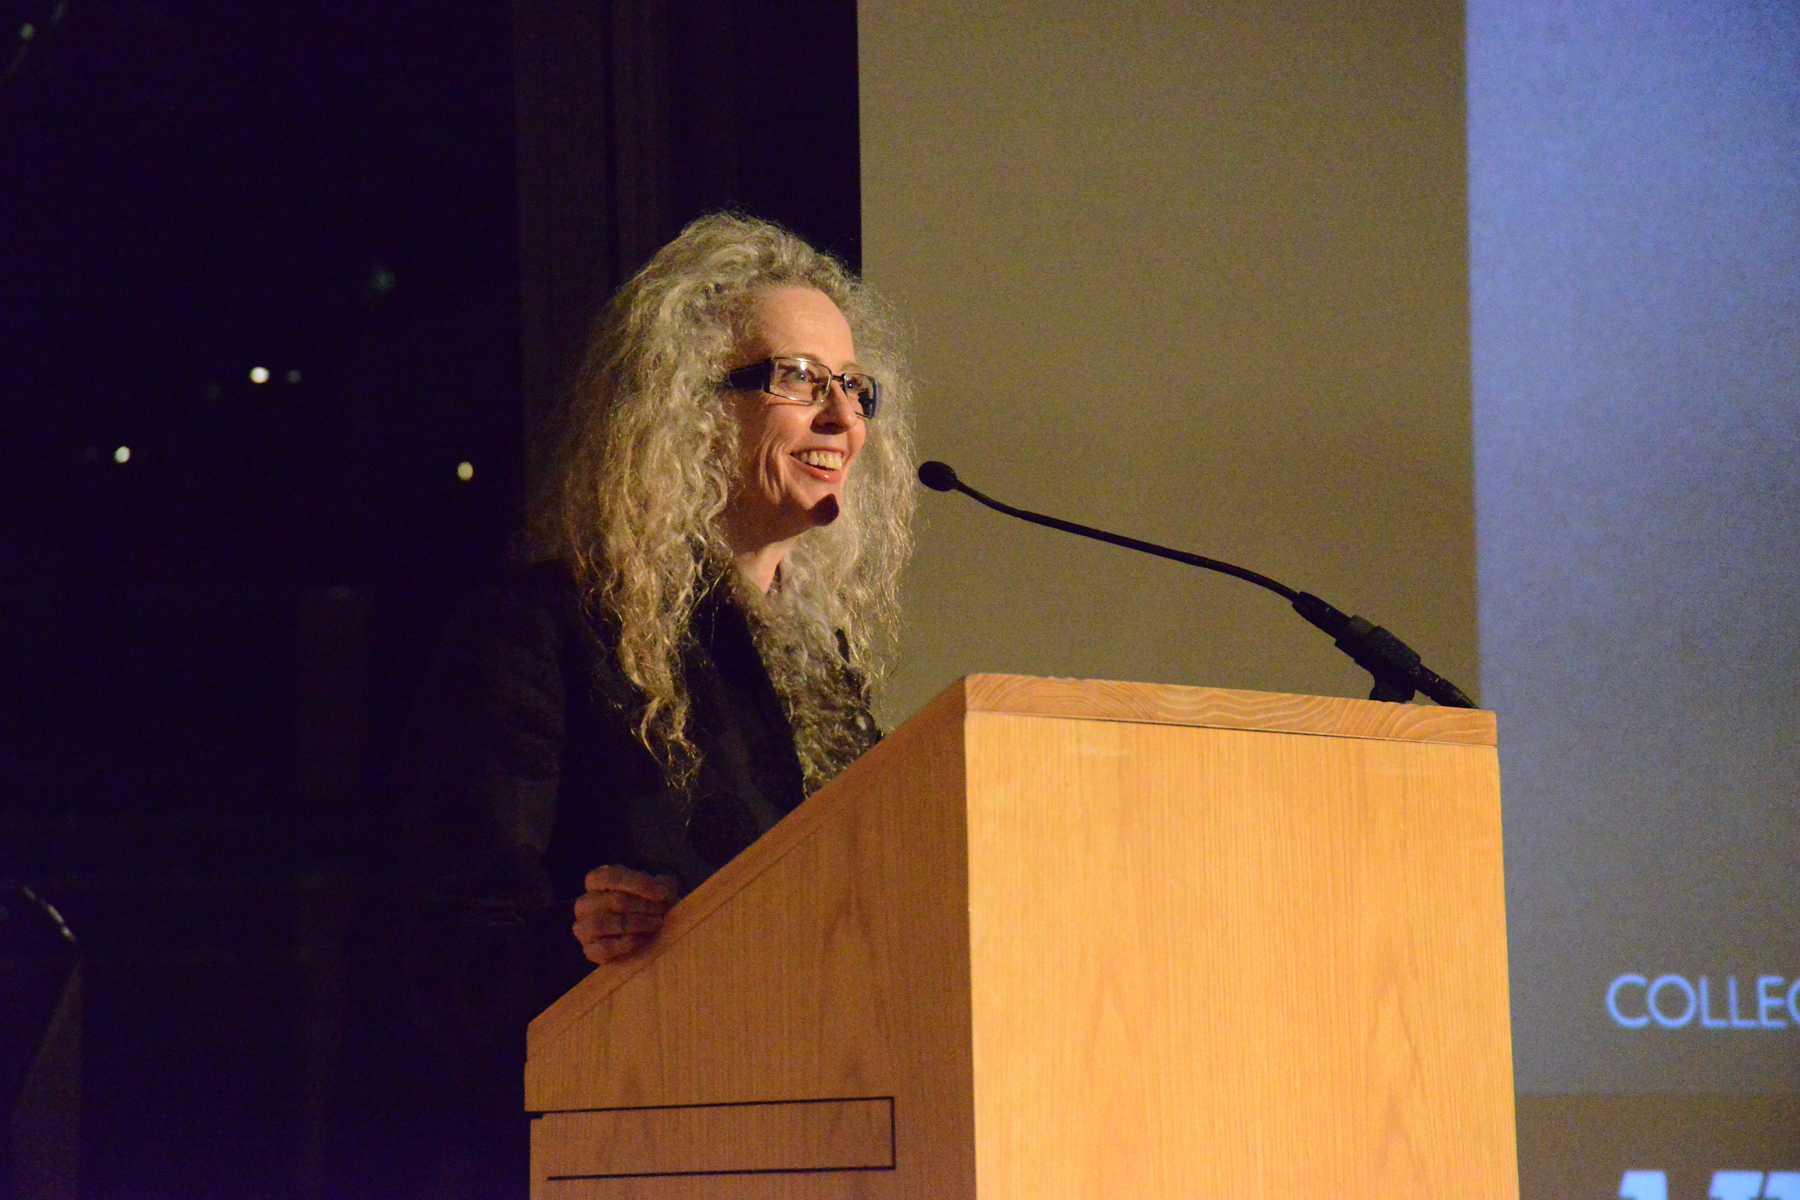 2013129-unt-nasher-lecture-kiki-smith-on-stage-left-side